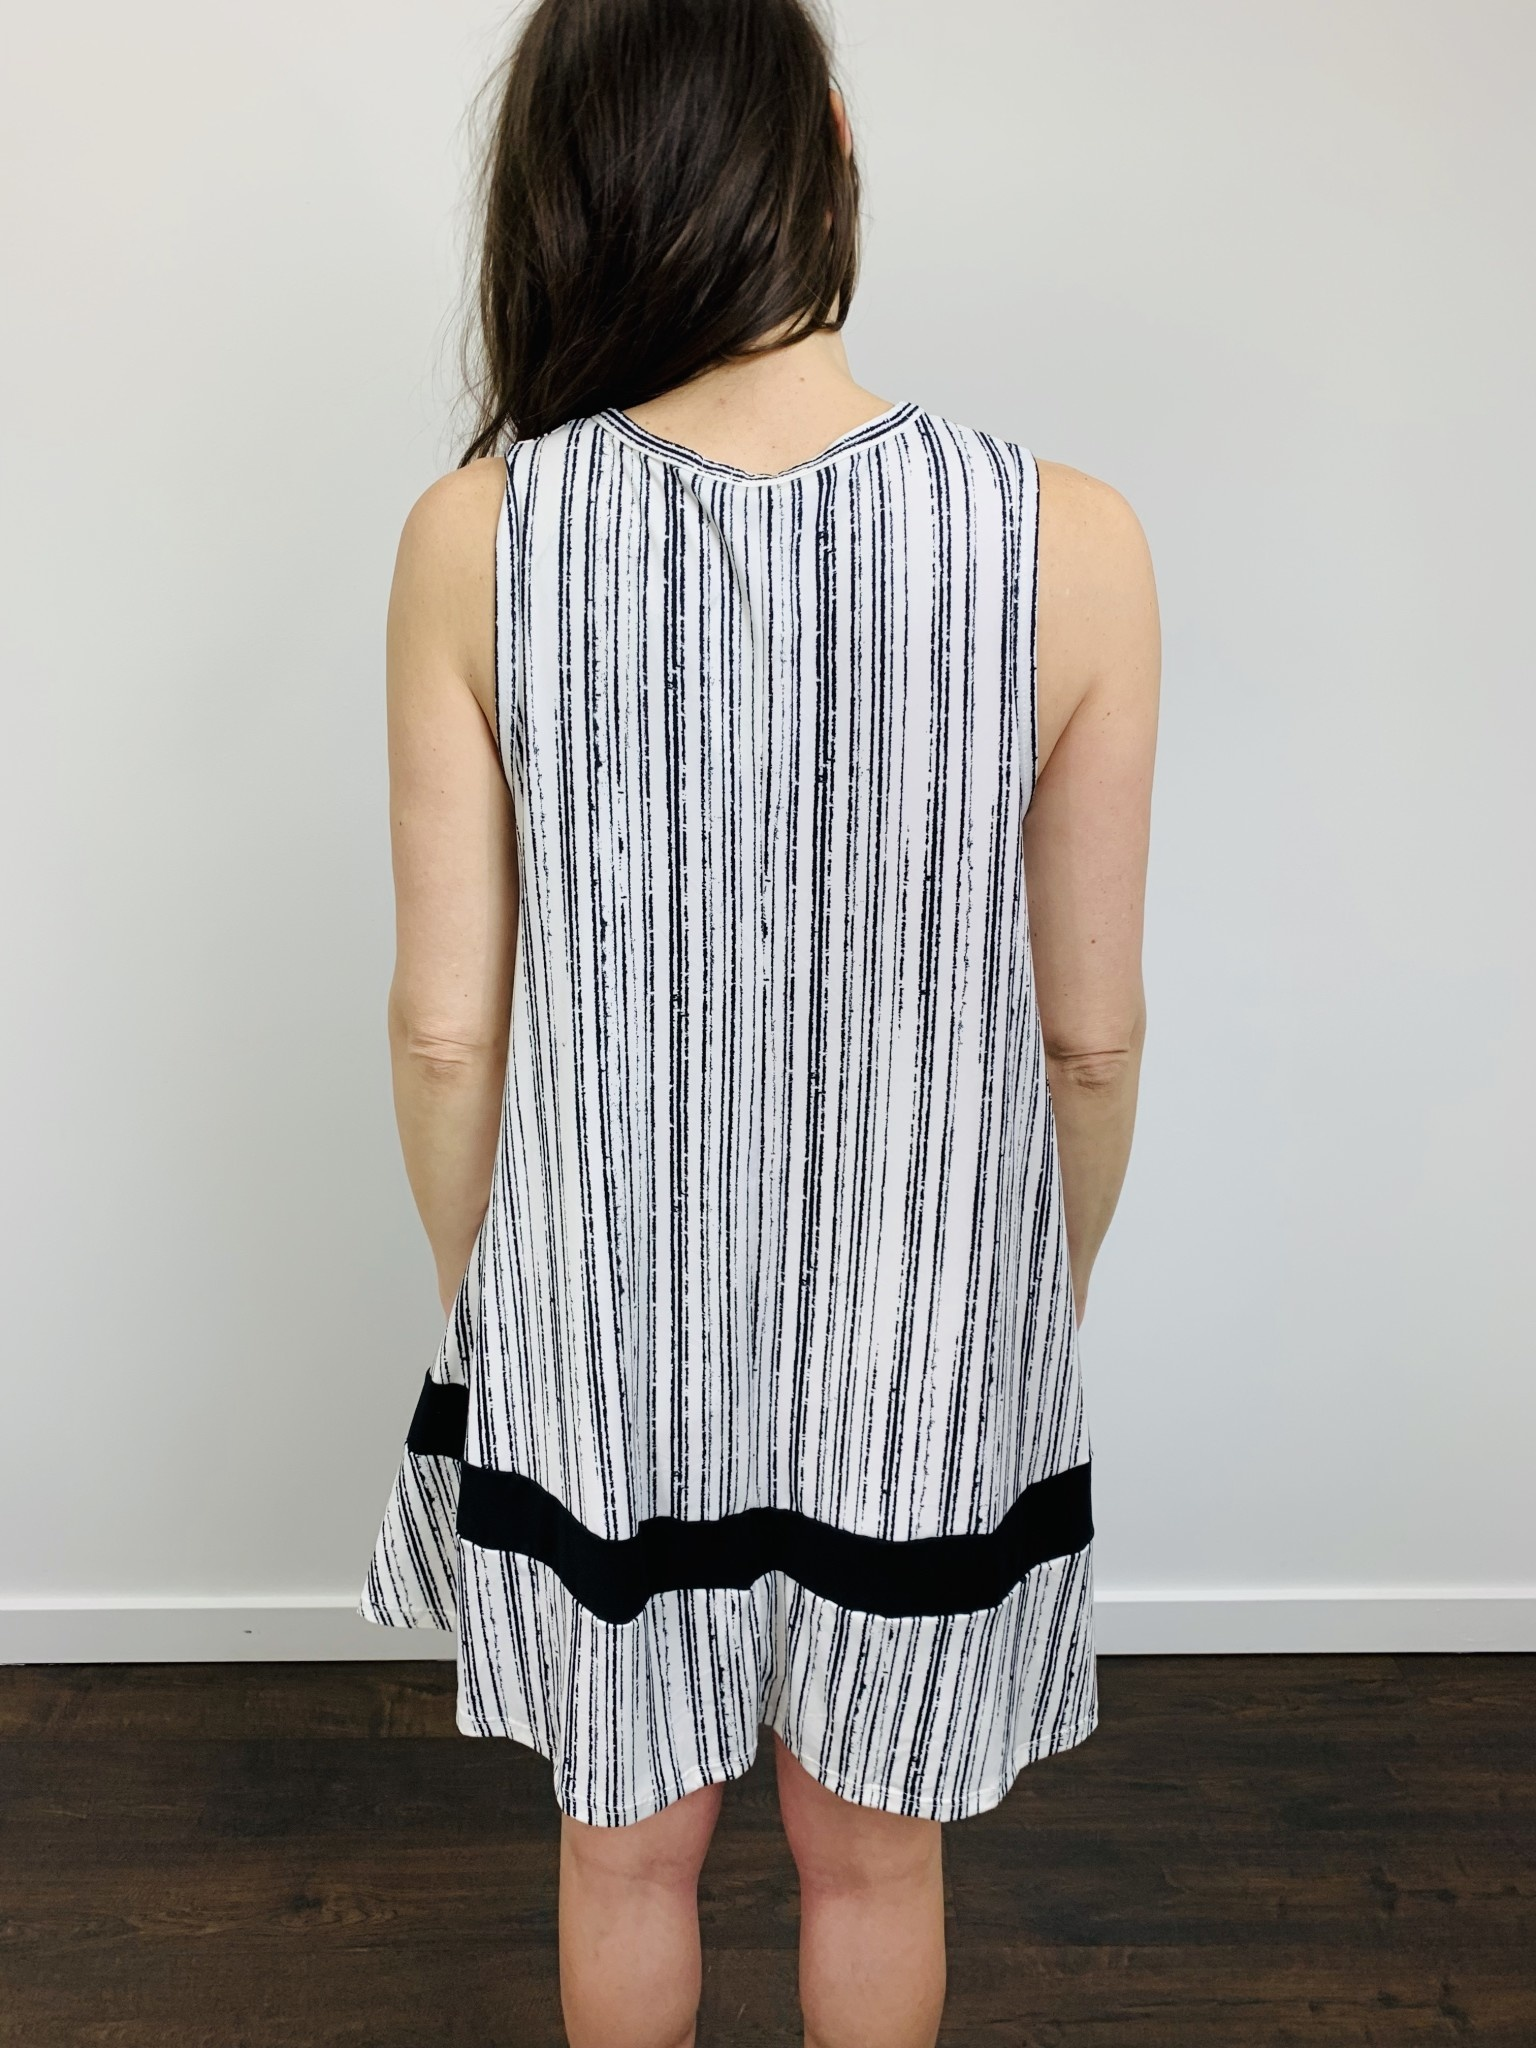 Papillon Broken Striped ALine Dress